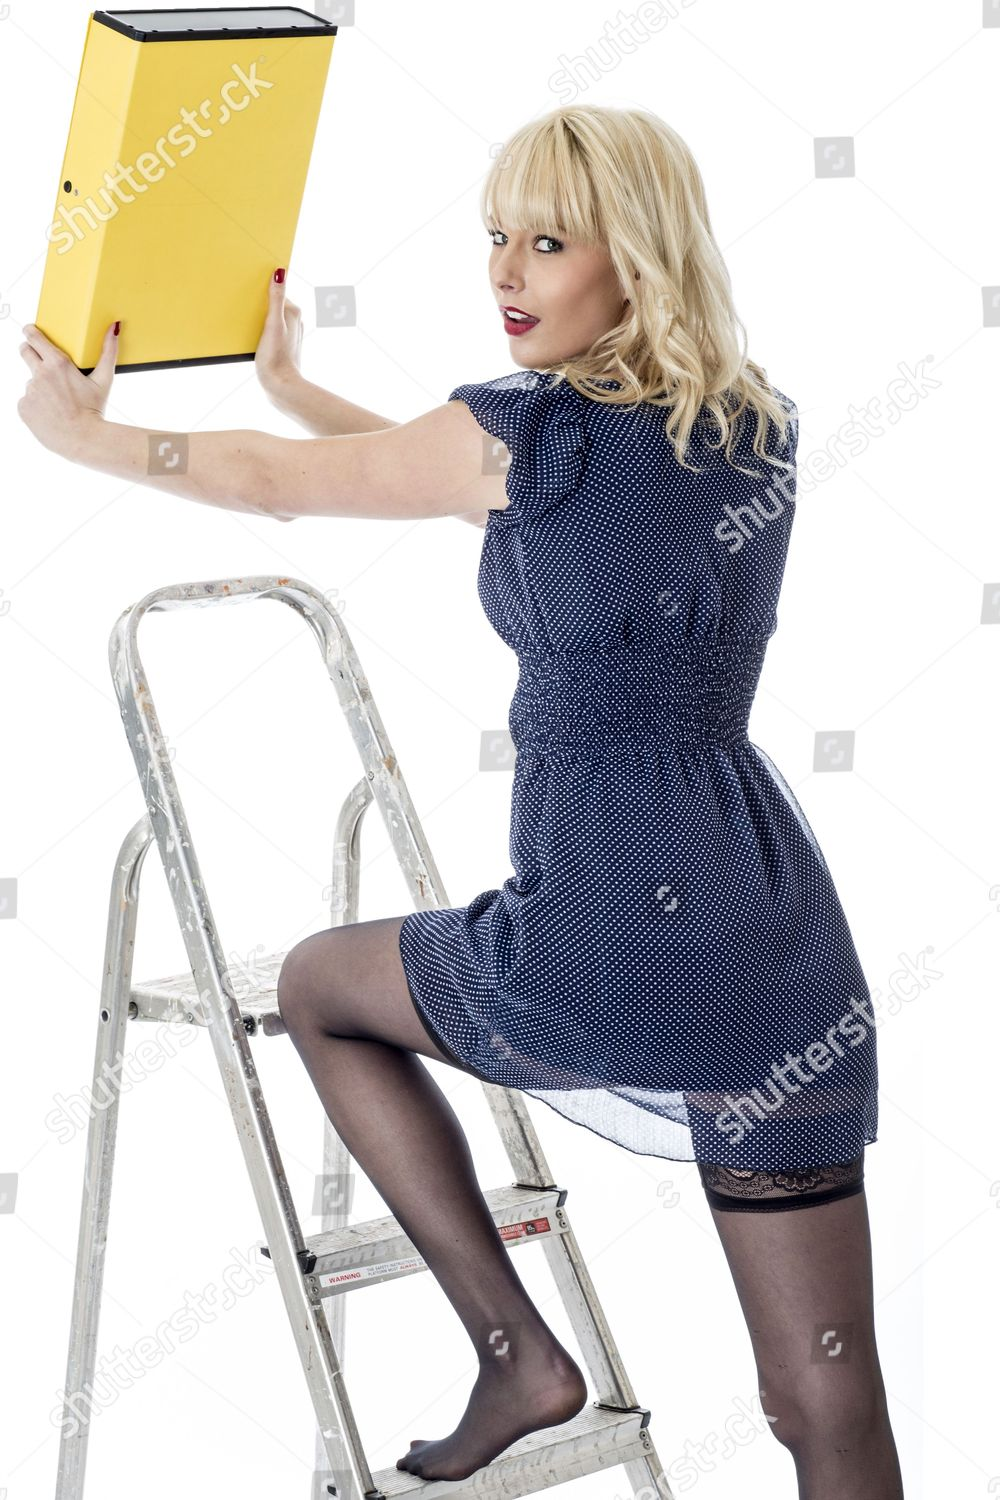 763f9b84dfd Attractive young woman - Nov 2013 Stock Image by Martin Lee for editorial  use